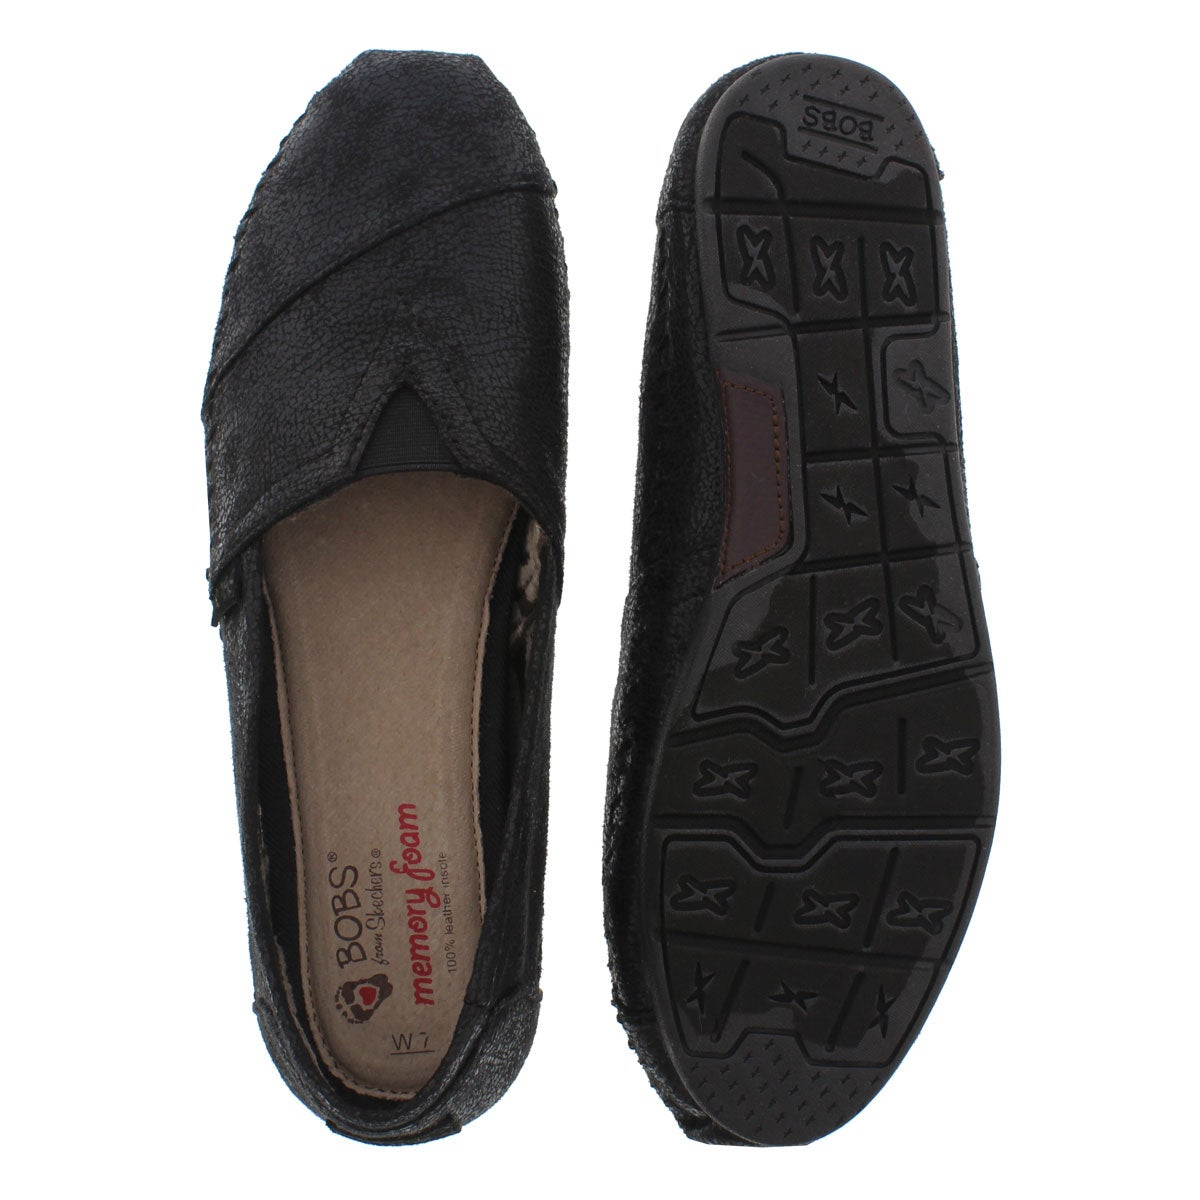 Lds Luxe Bobs Rain Dance blk slip on